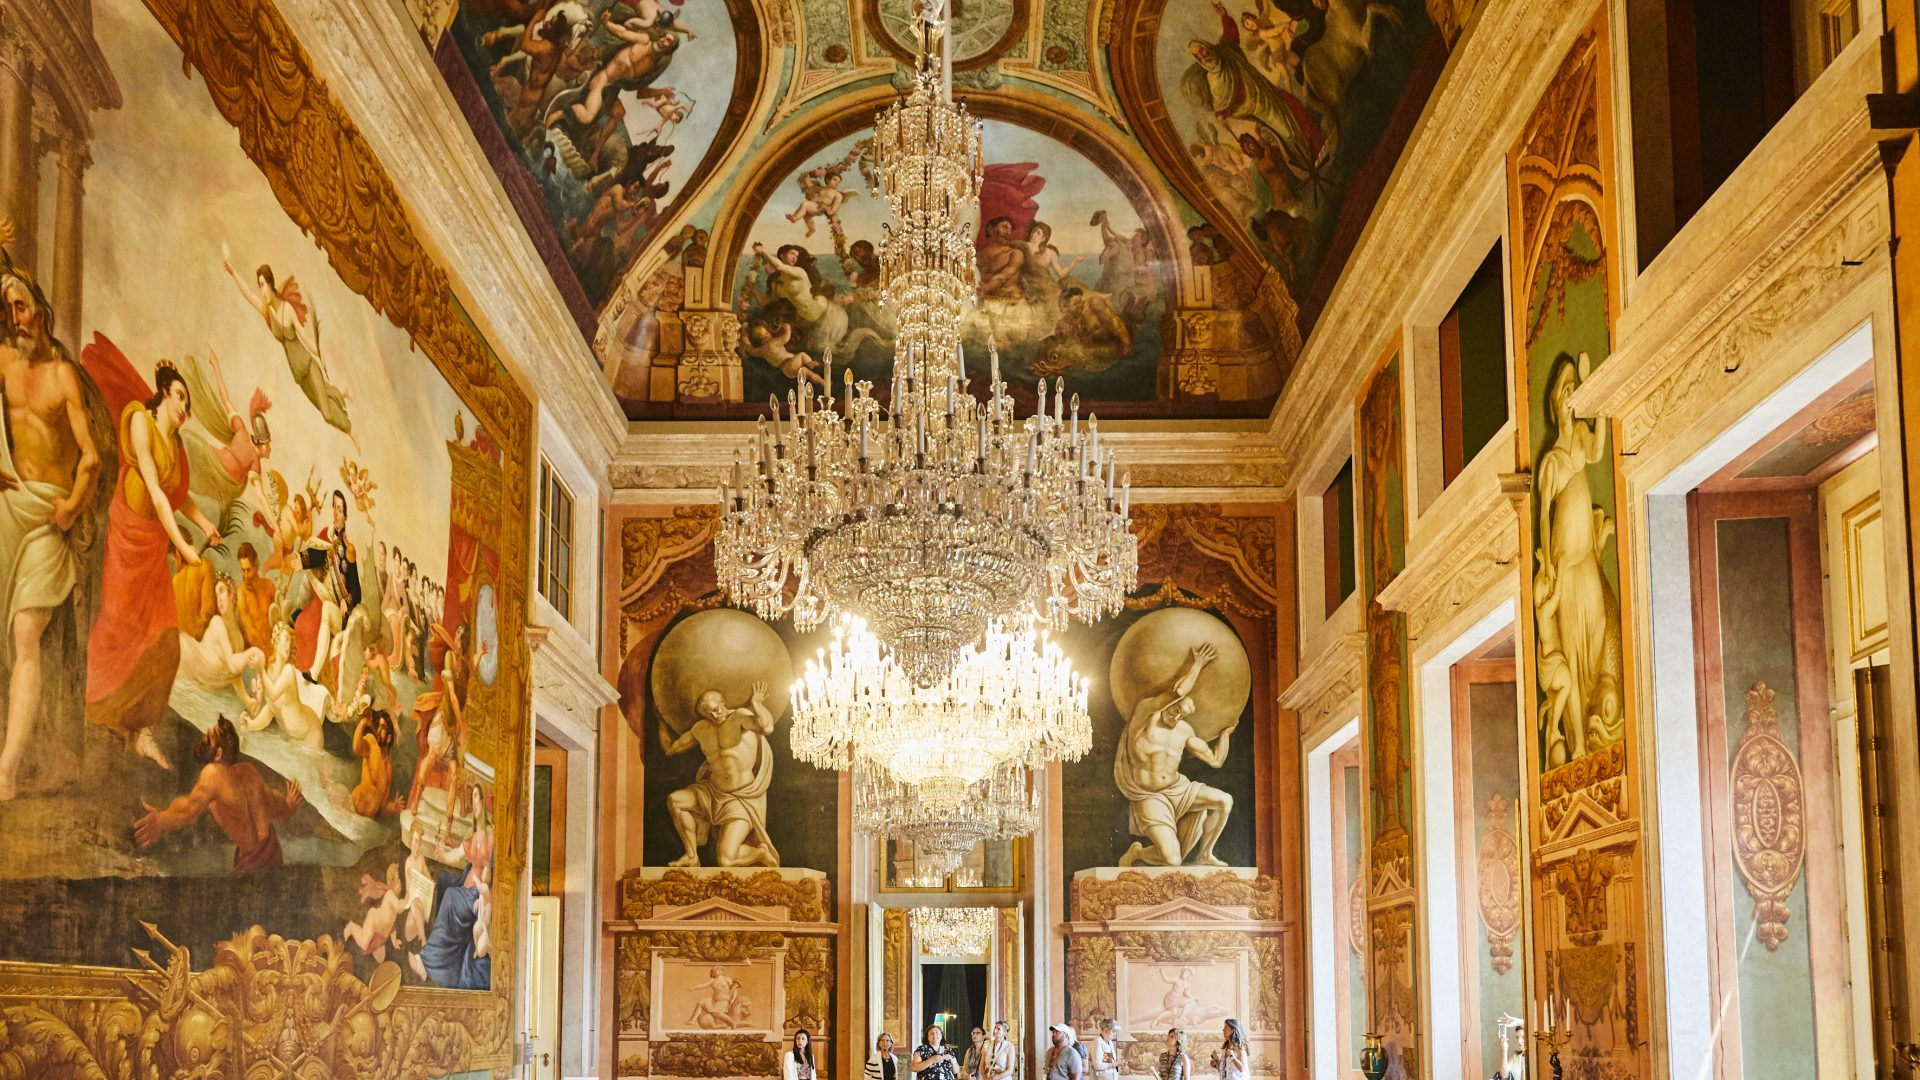 Lisbon, Portugal - palace interior with chandeliers and fresks